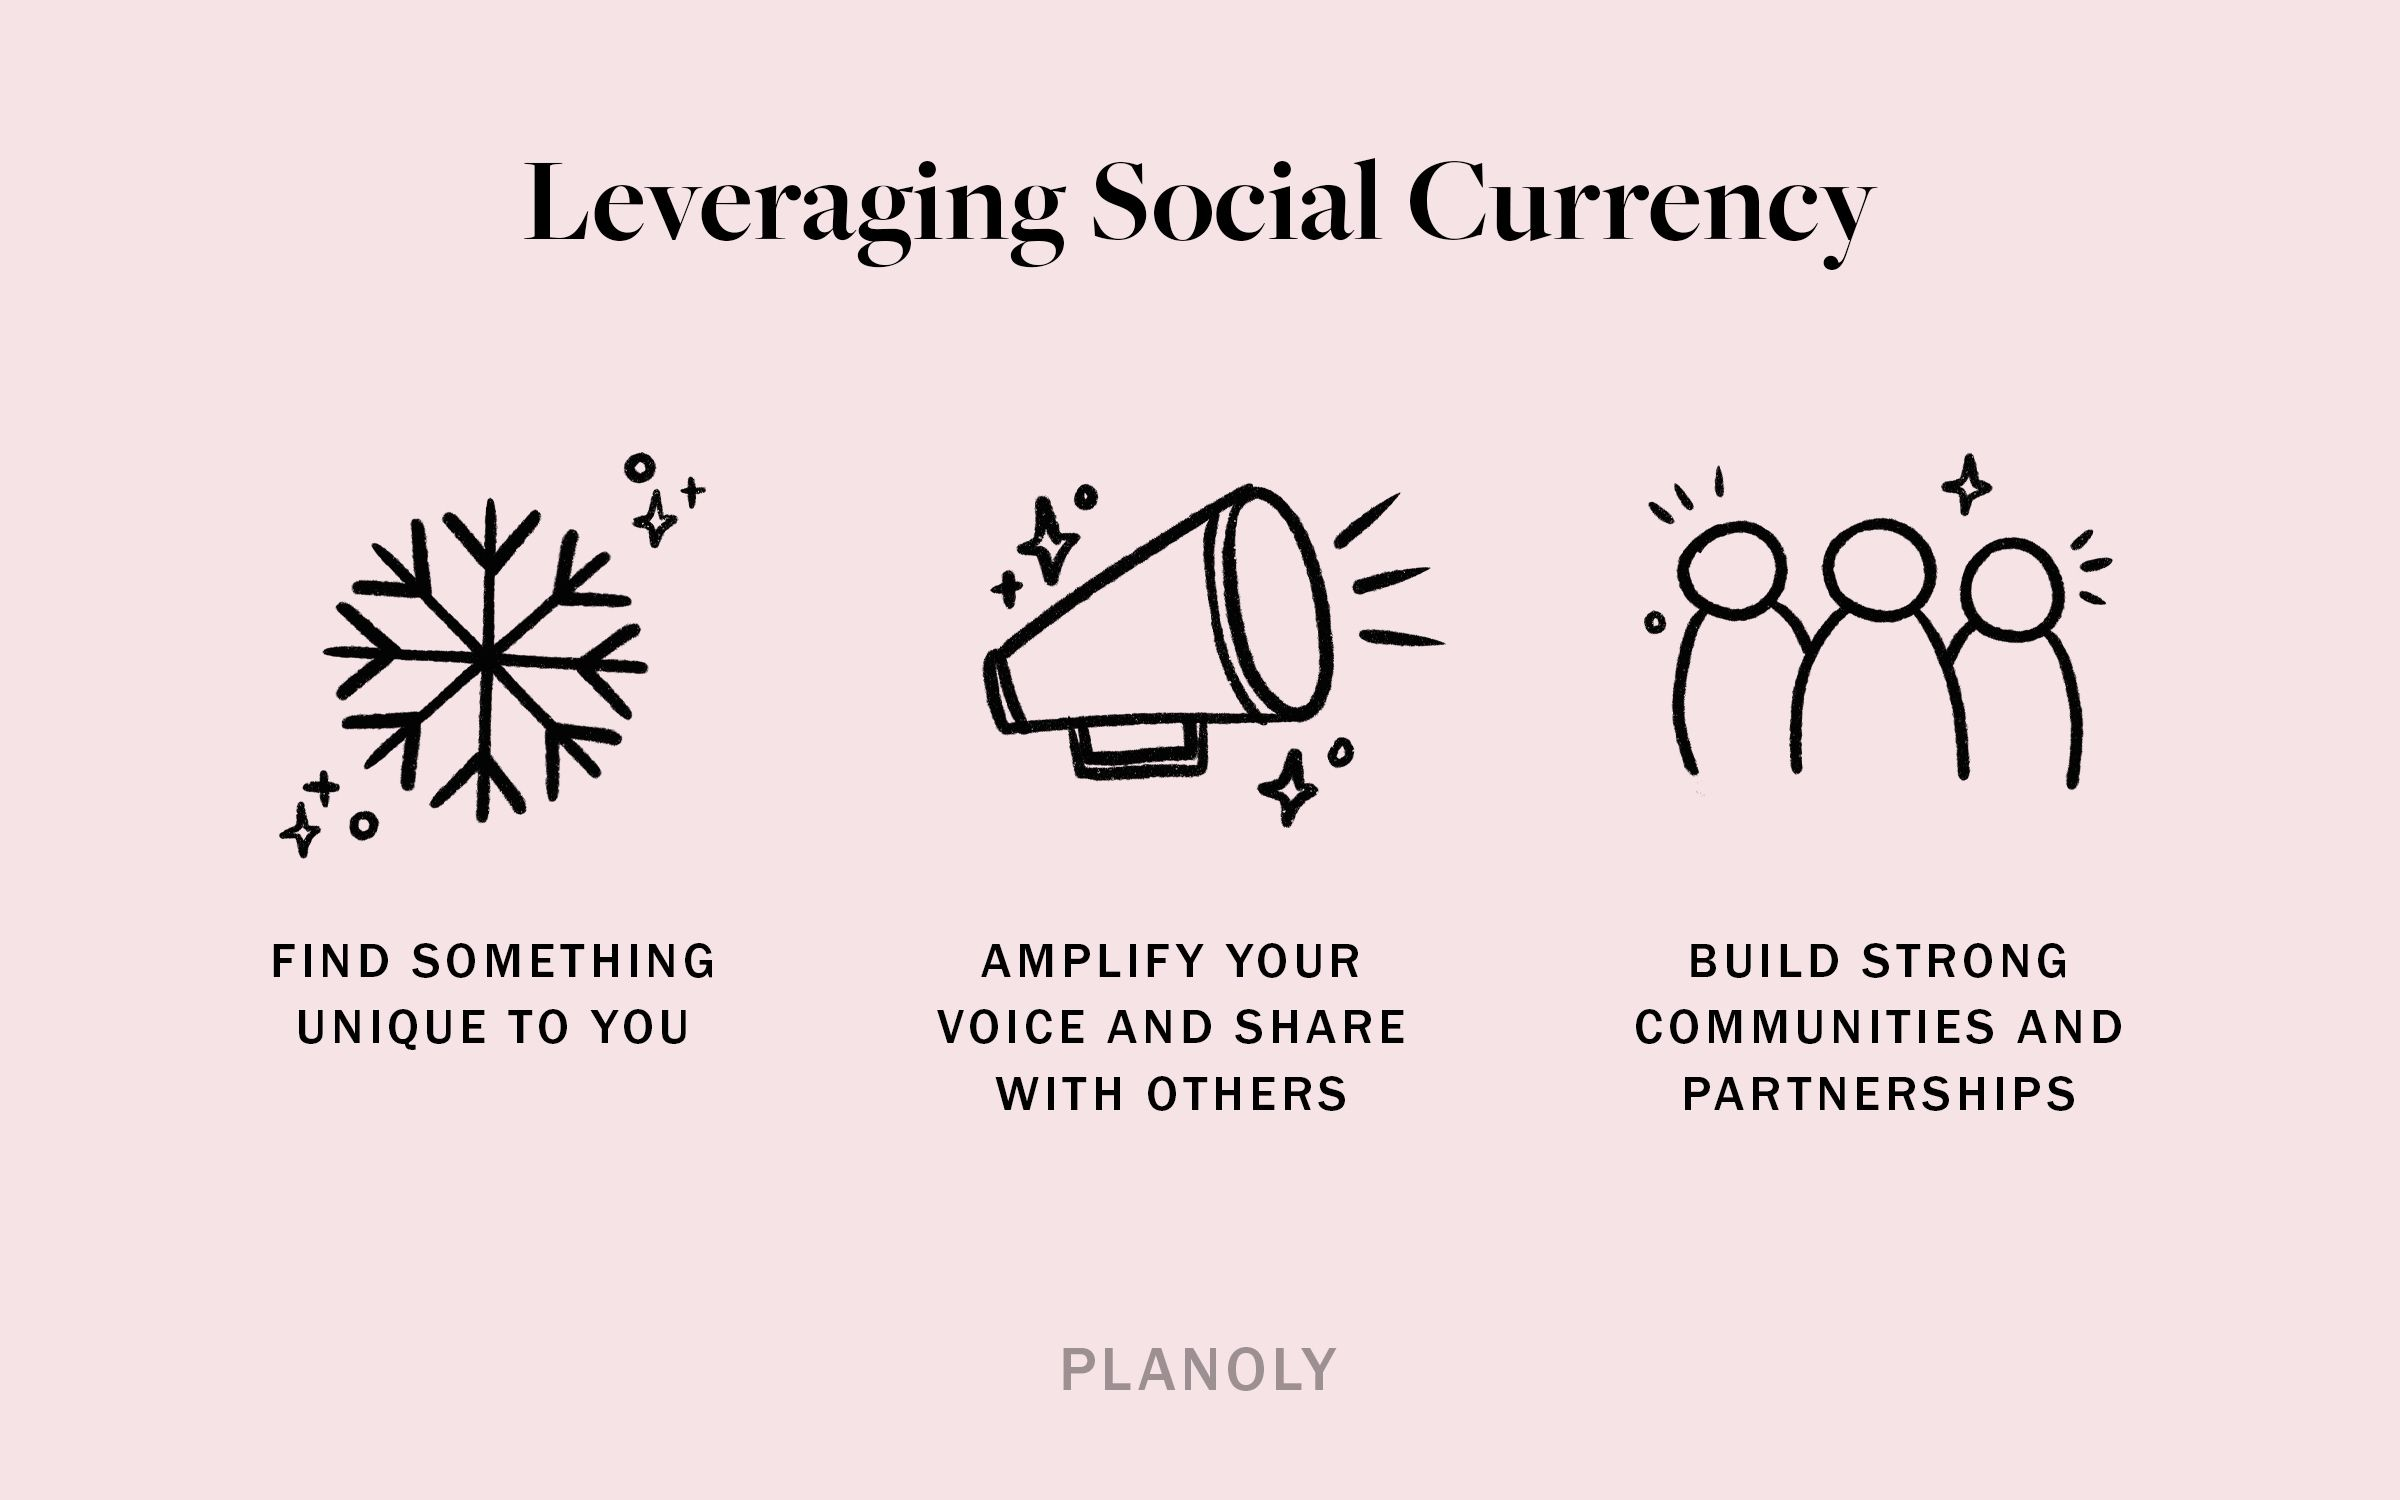 PLANOLY - Blog - Social Currency - Horizontal - 1